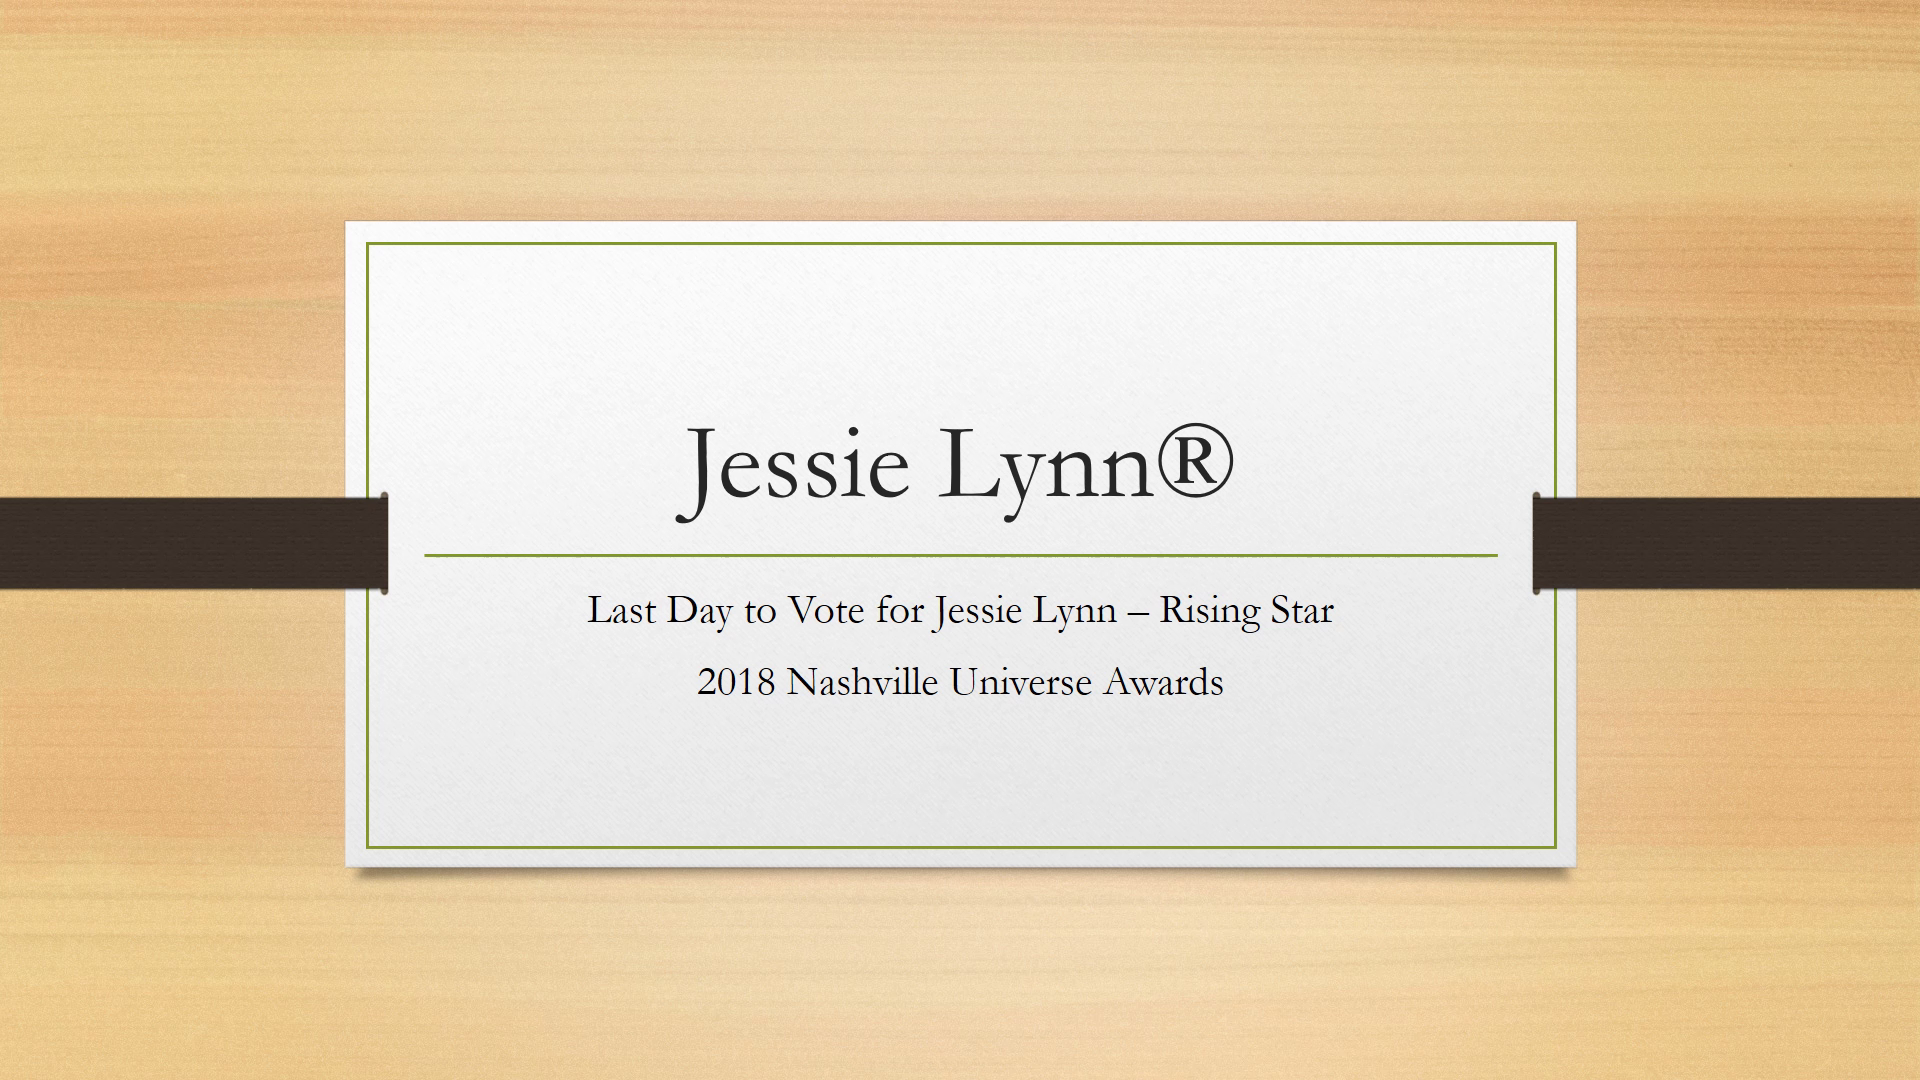 Jessie Lynn® - Thank You for Voting